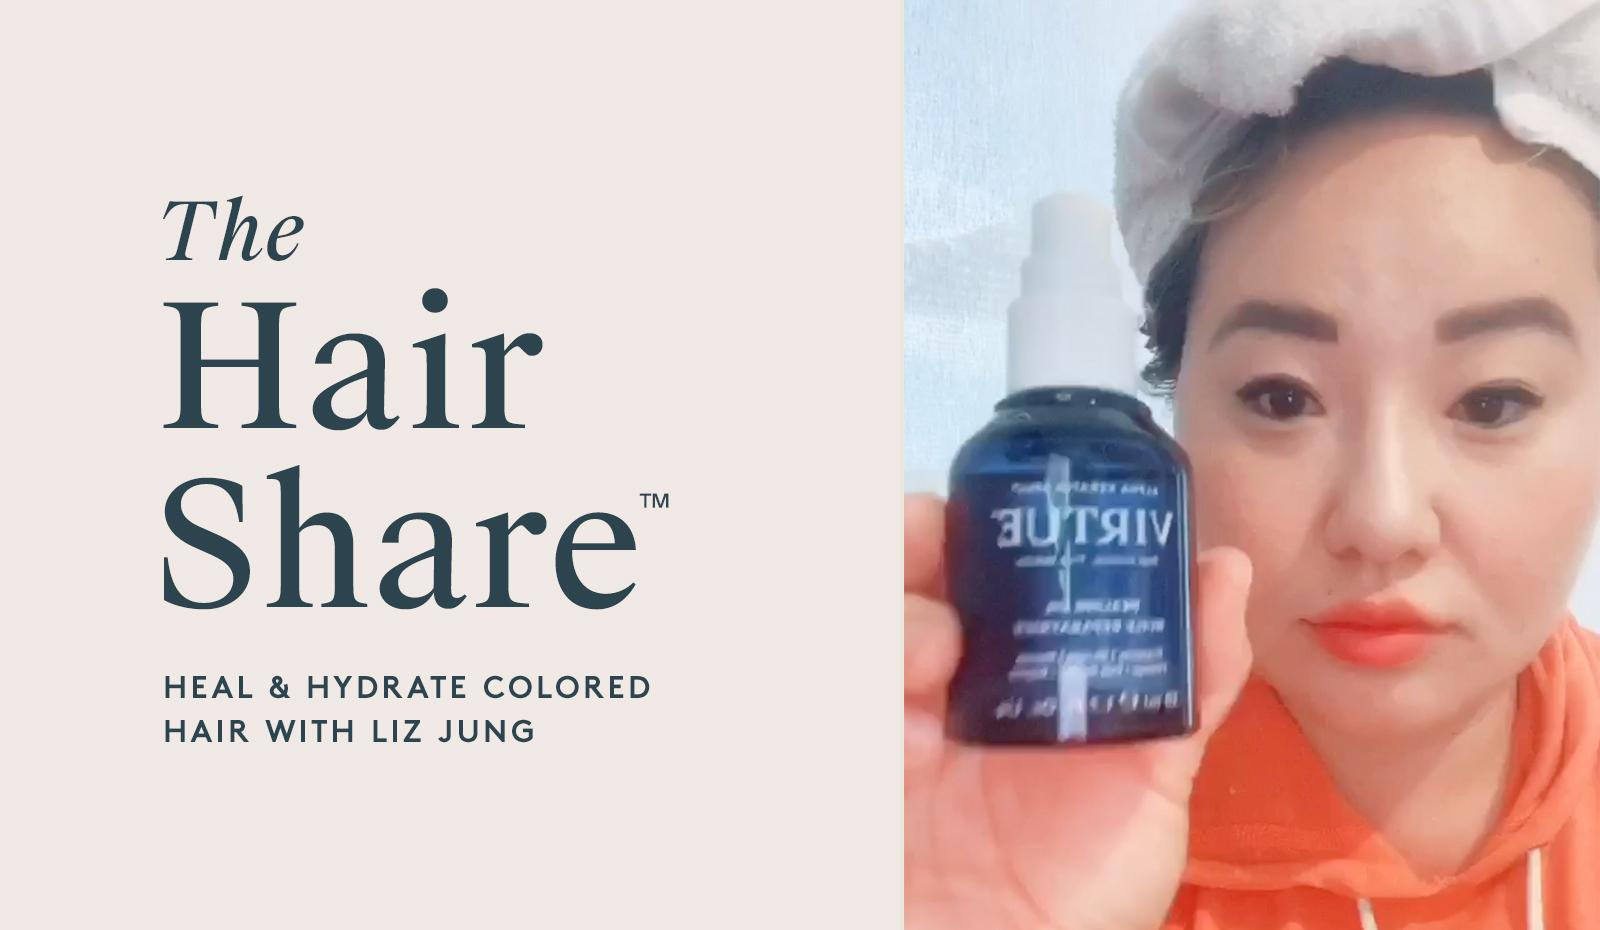 The Hair Share®: Heal & Hydrate Colored Hair with Liz Jung